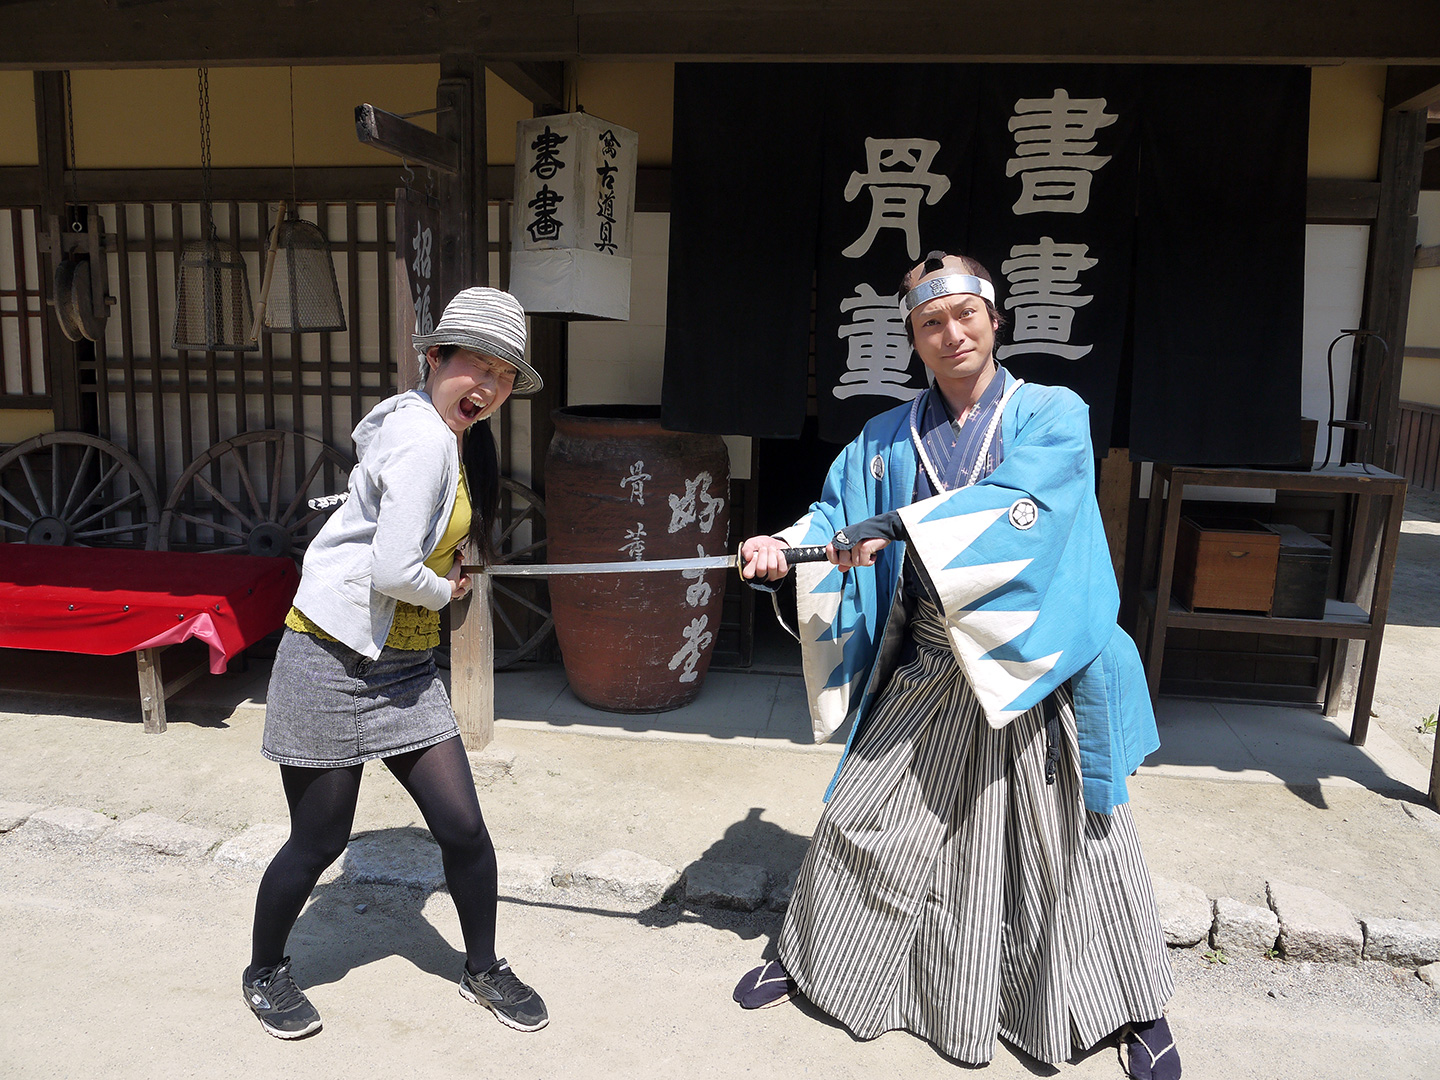 samurai pretends to stab woman with his sword